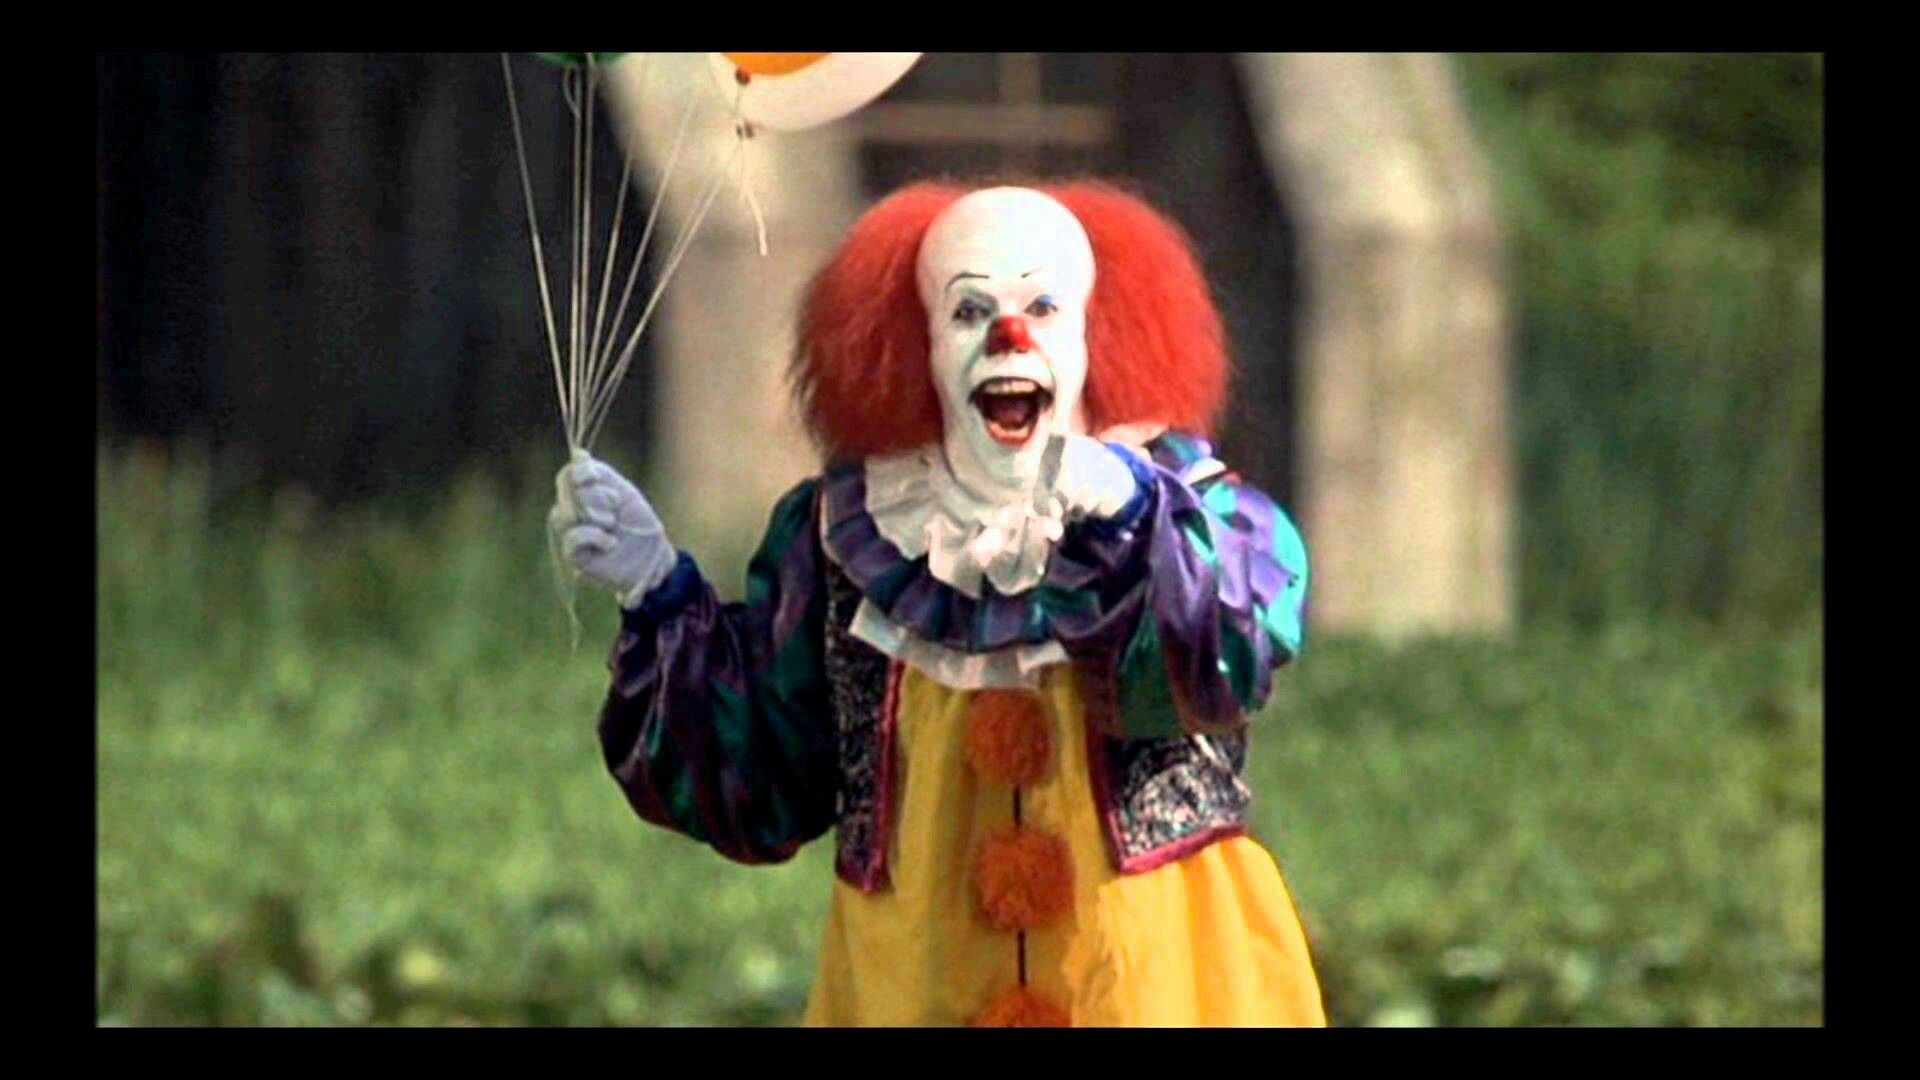 Pennywise-Stephen King's THE IT | Horror Films | Pinterest ...